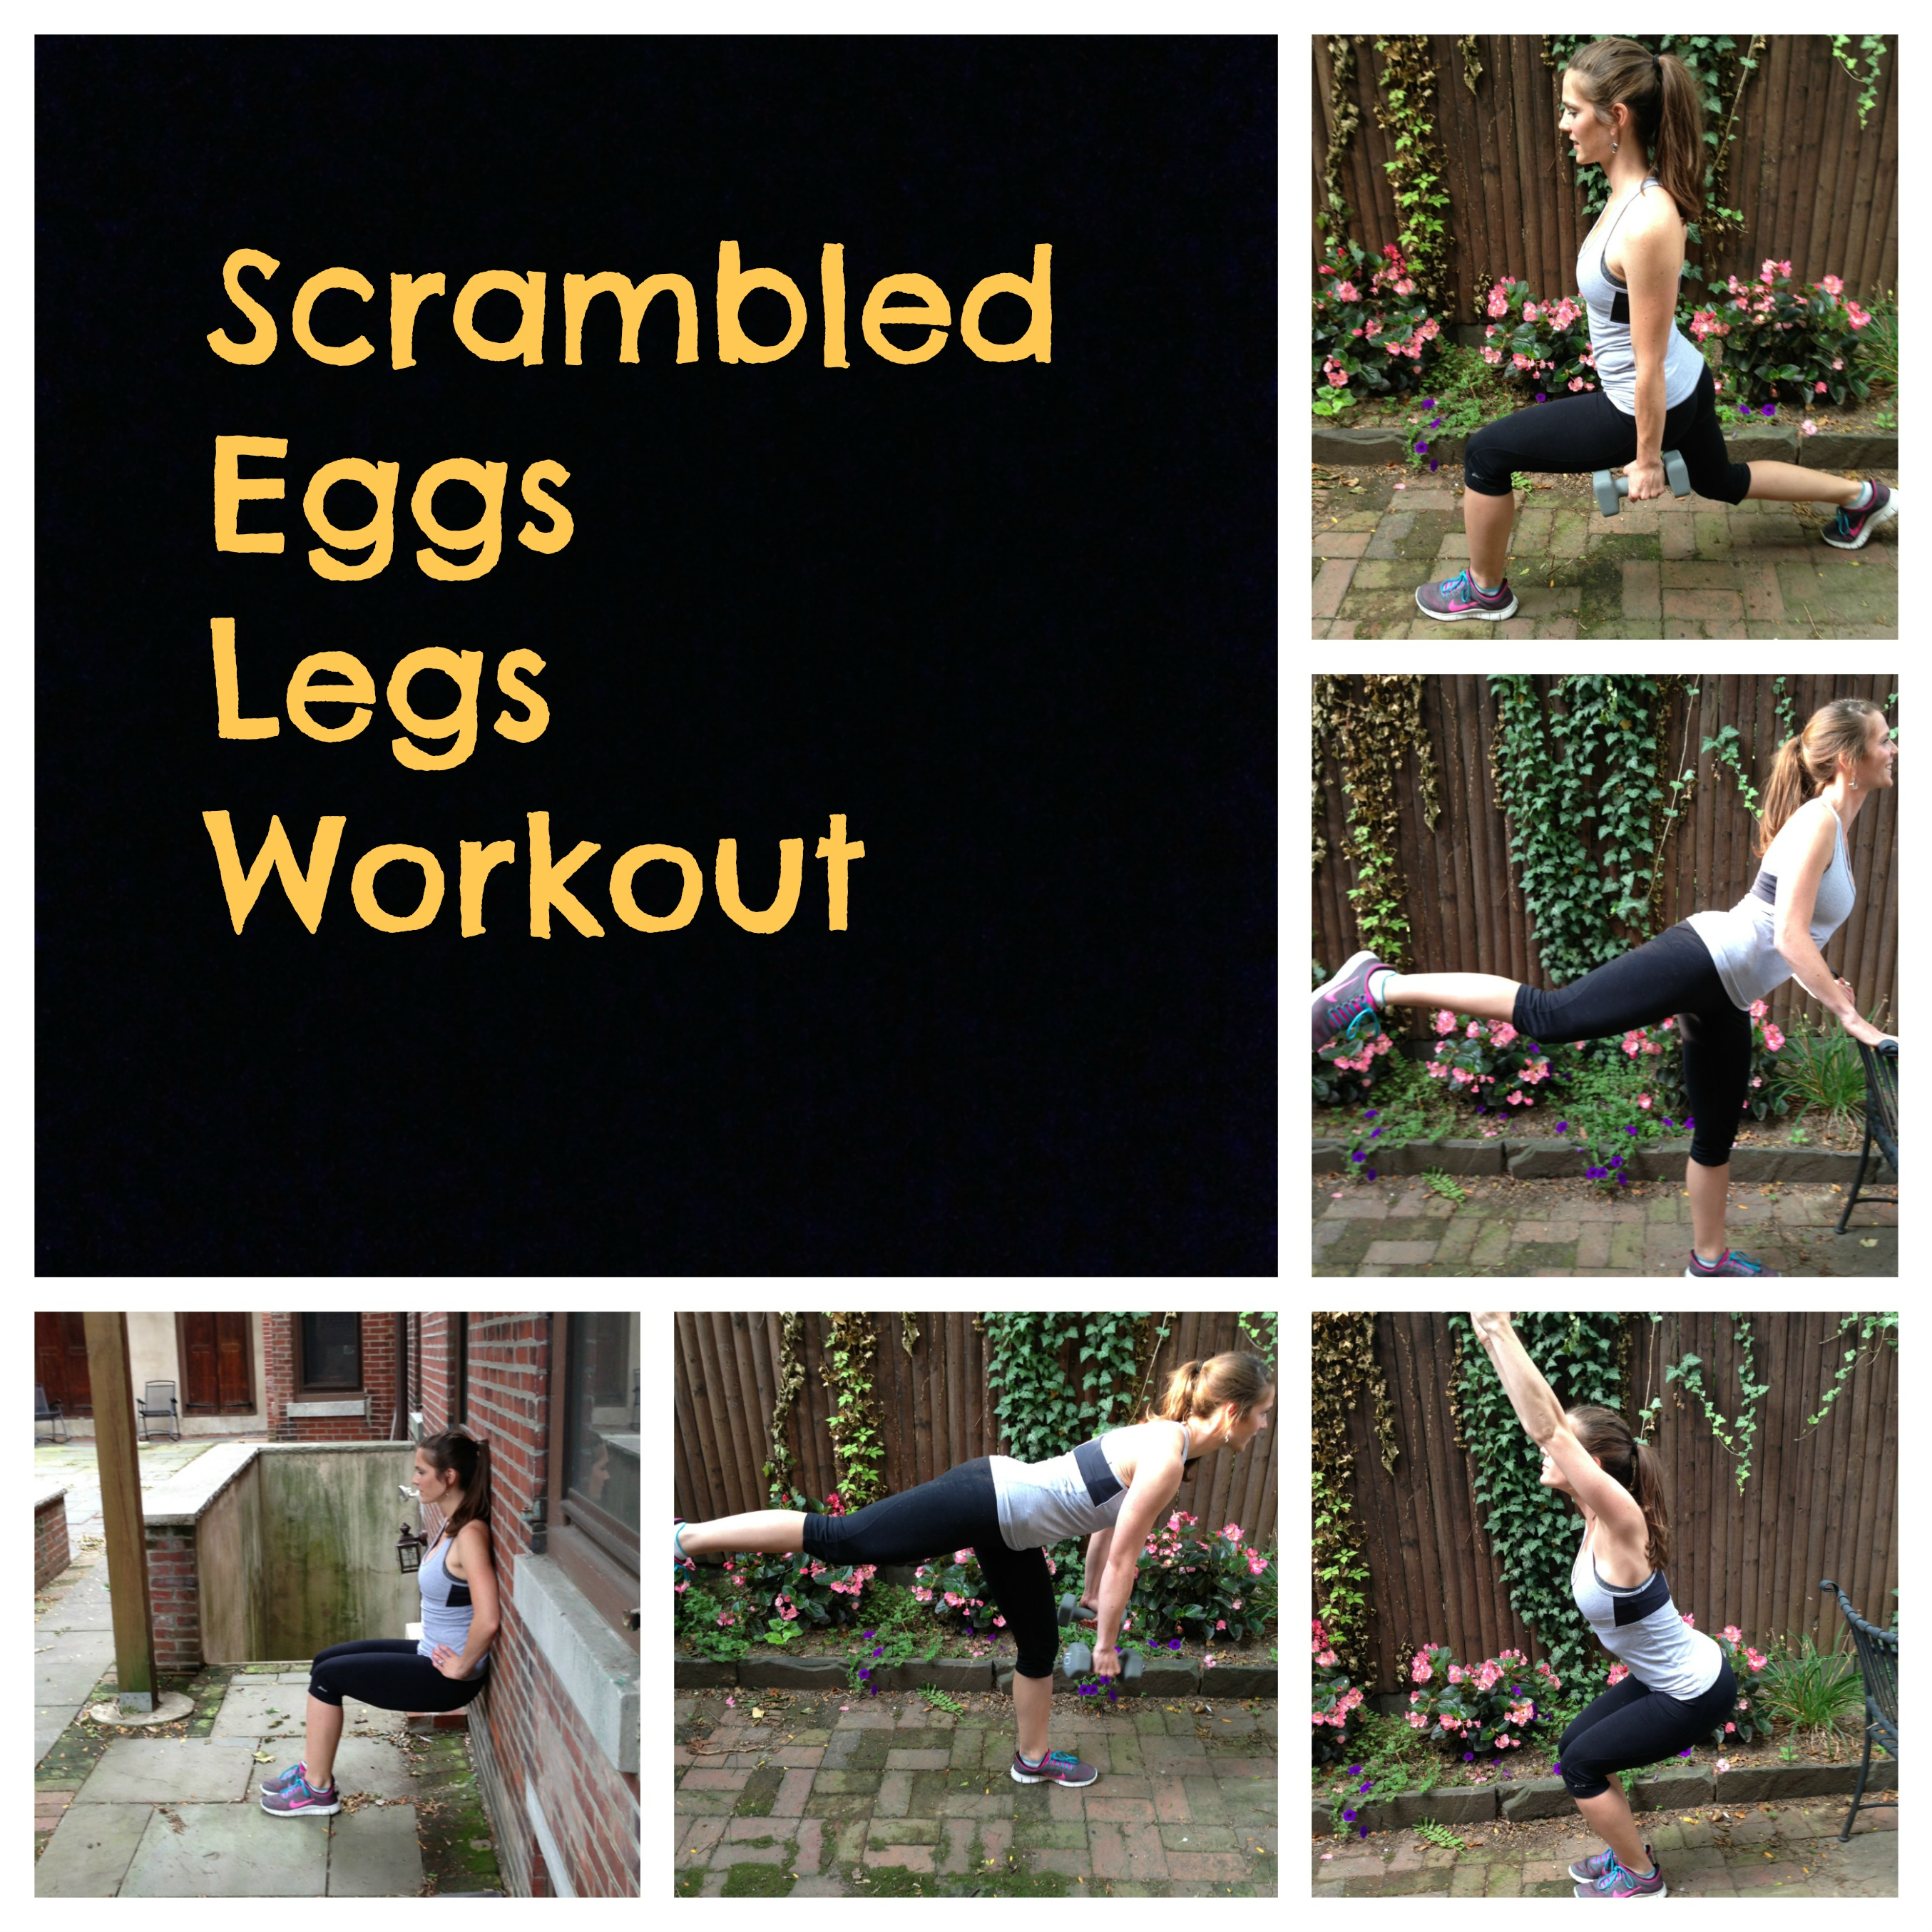 scrambled eggs legs workout